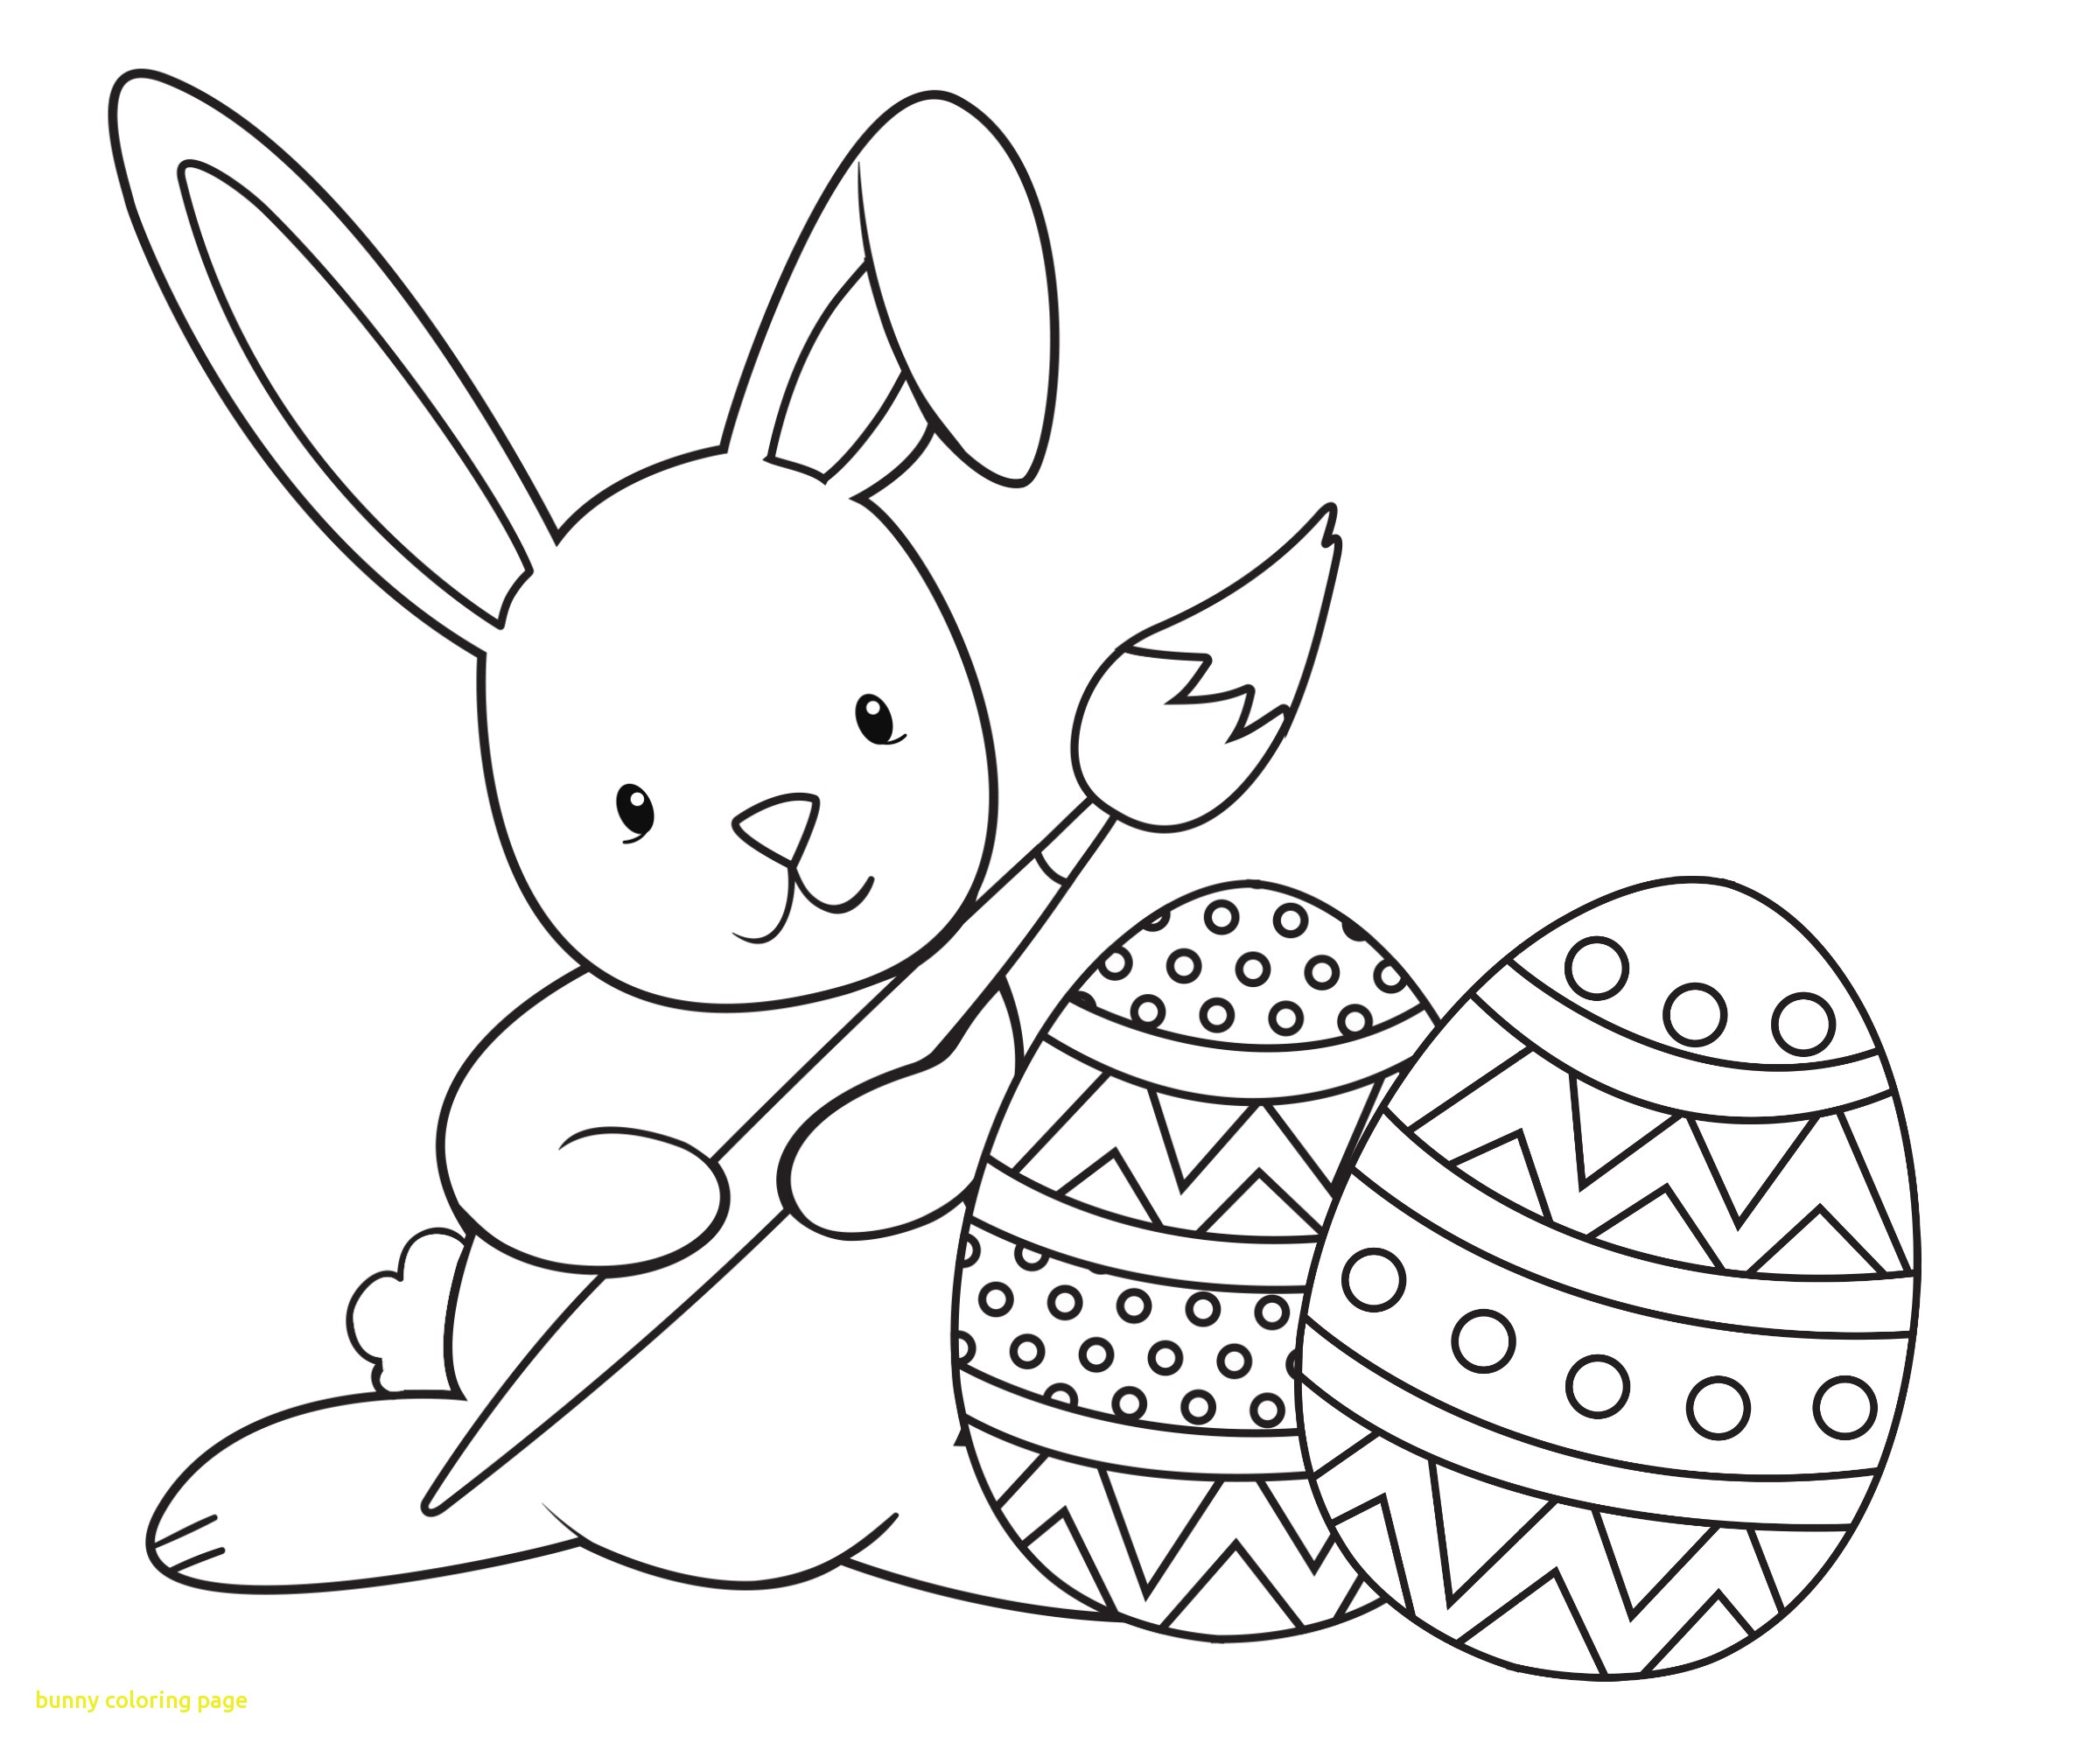 Fresh Coloring Pages A Rabbit Perfect Bunny 4 with 5690 Collection Of Remarkable Realistic Bunny Coloring Pages Rabb Unknown Download